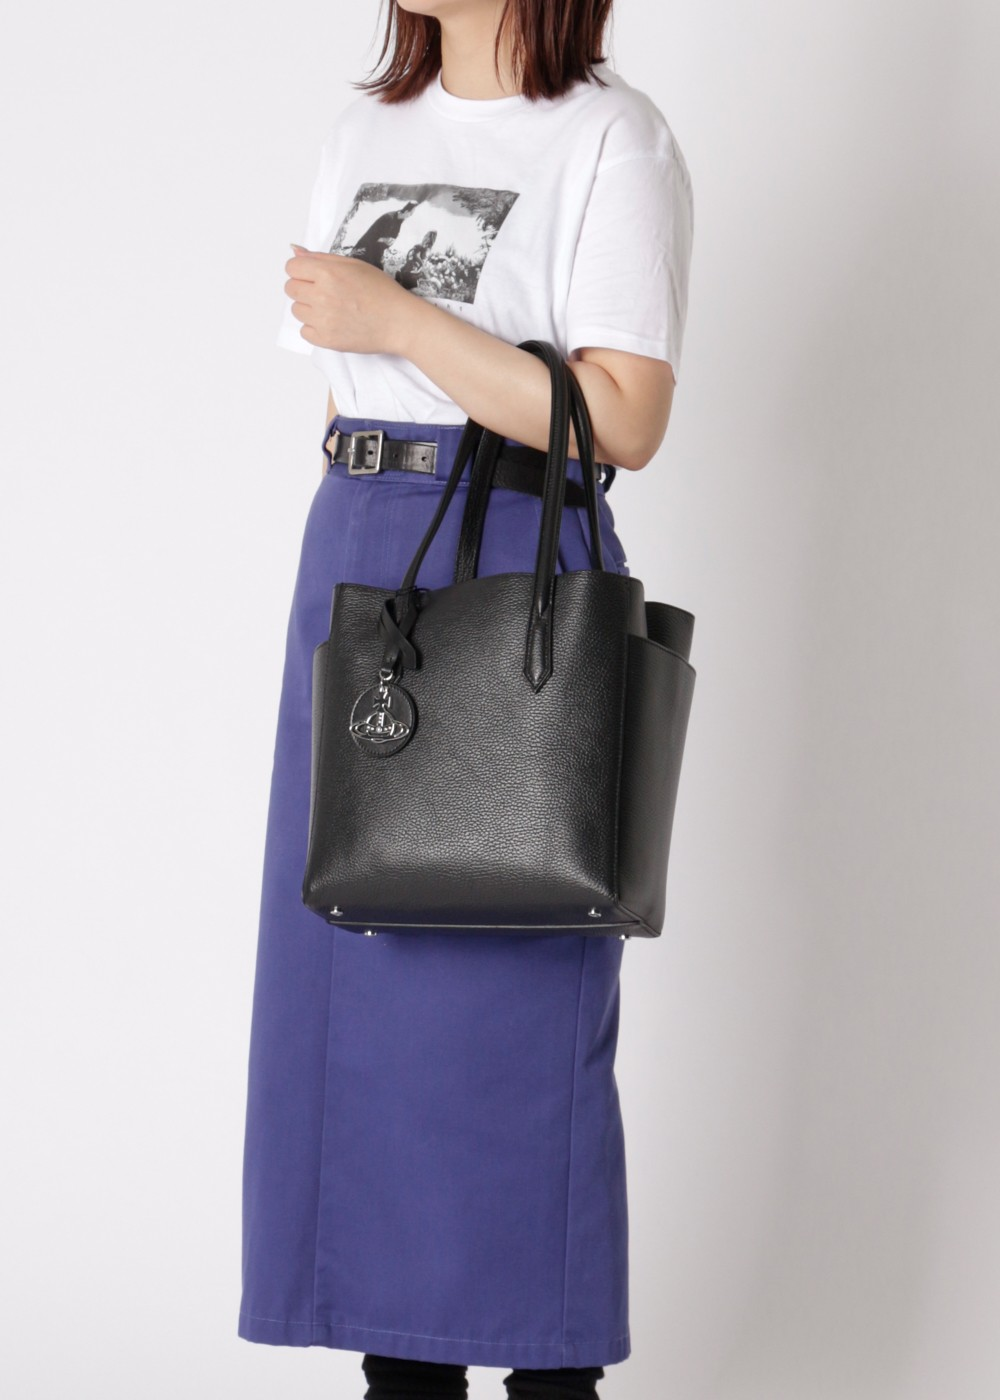 【最大61%OFF】【Price Down】RACHEL SMALL SHOPPER BAG|BLACK|トートバッグ|Vivienne Westwood